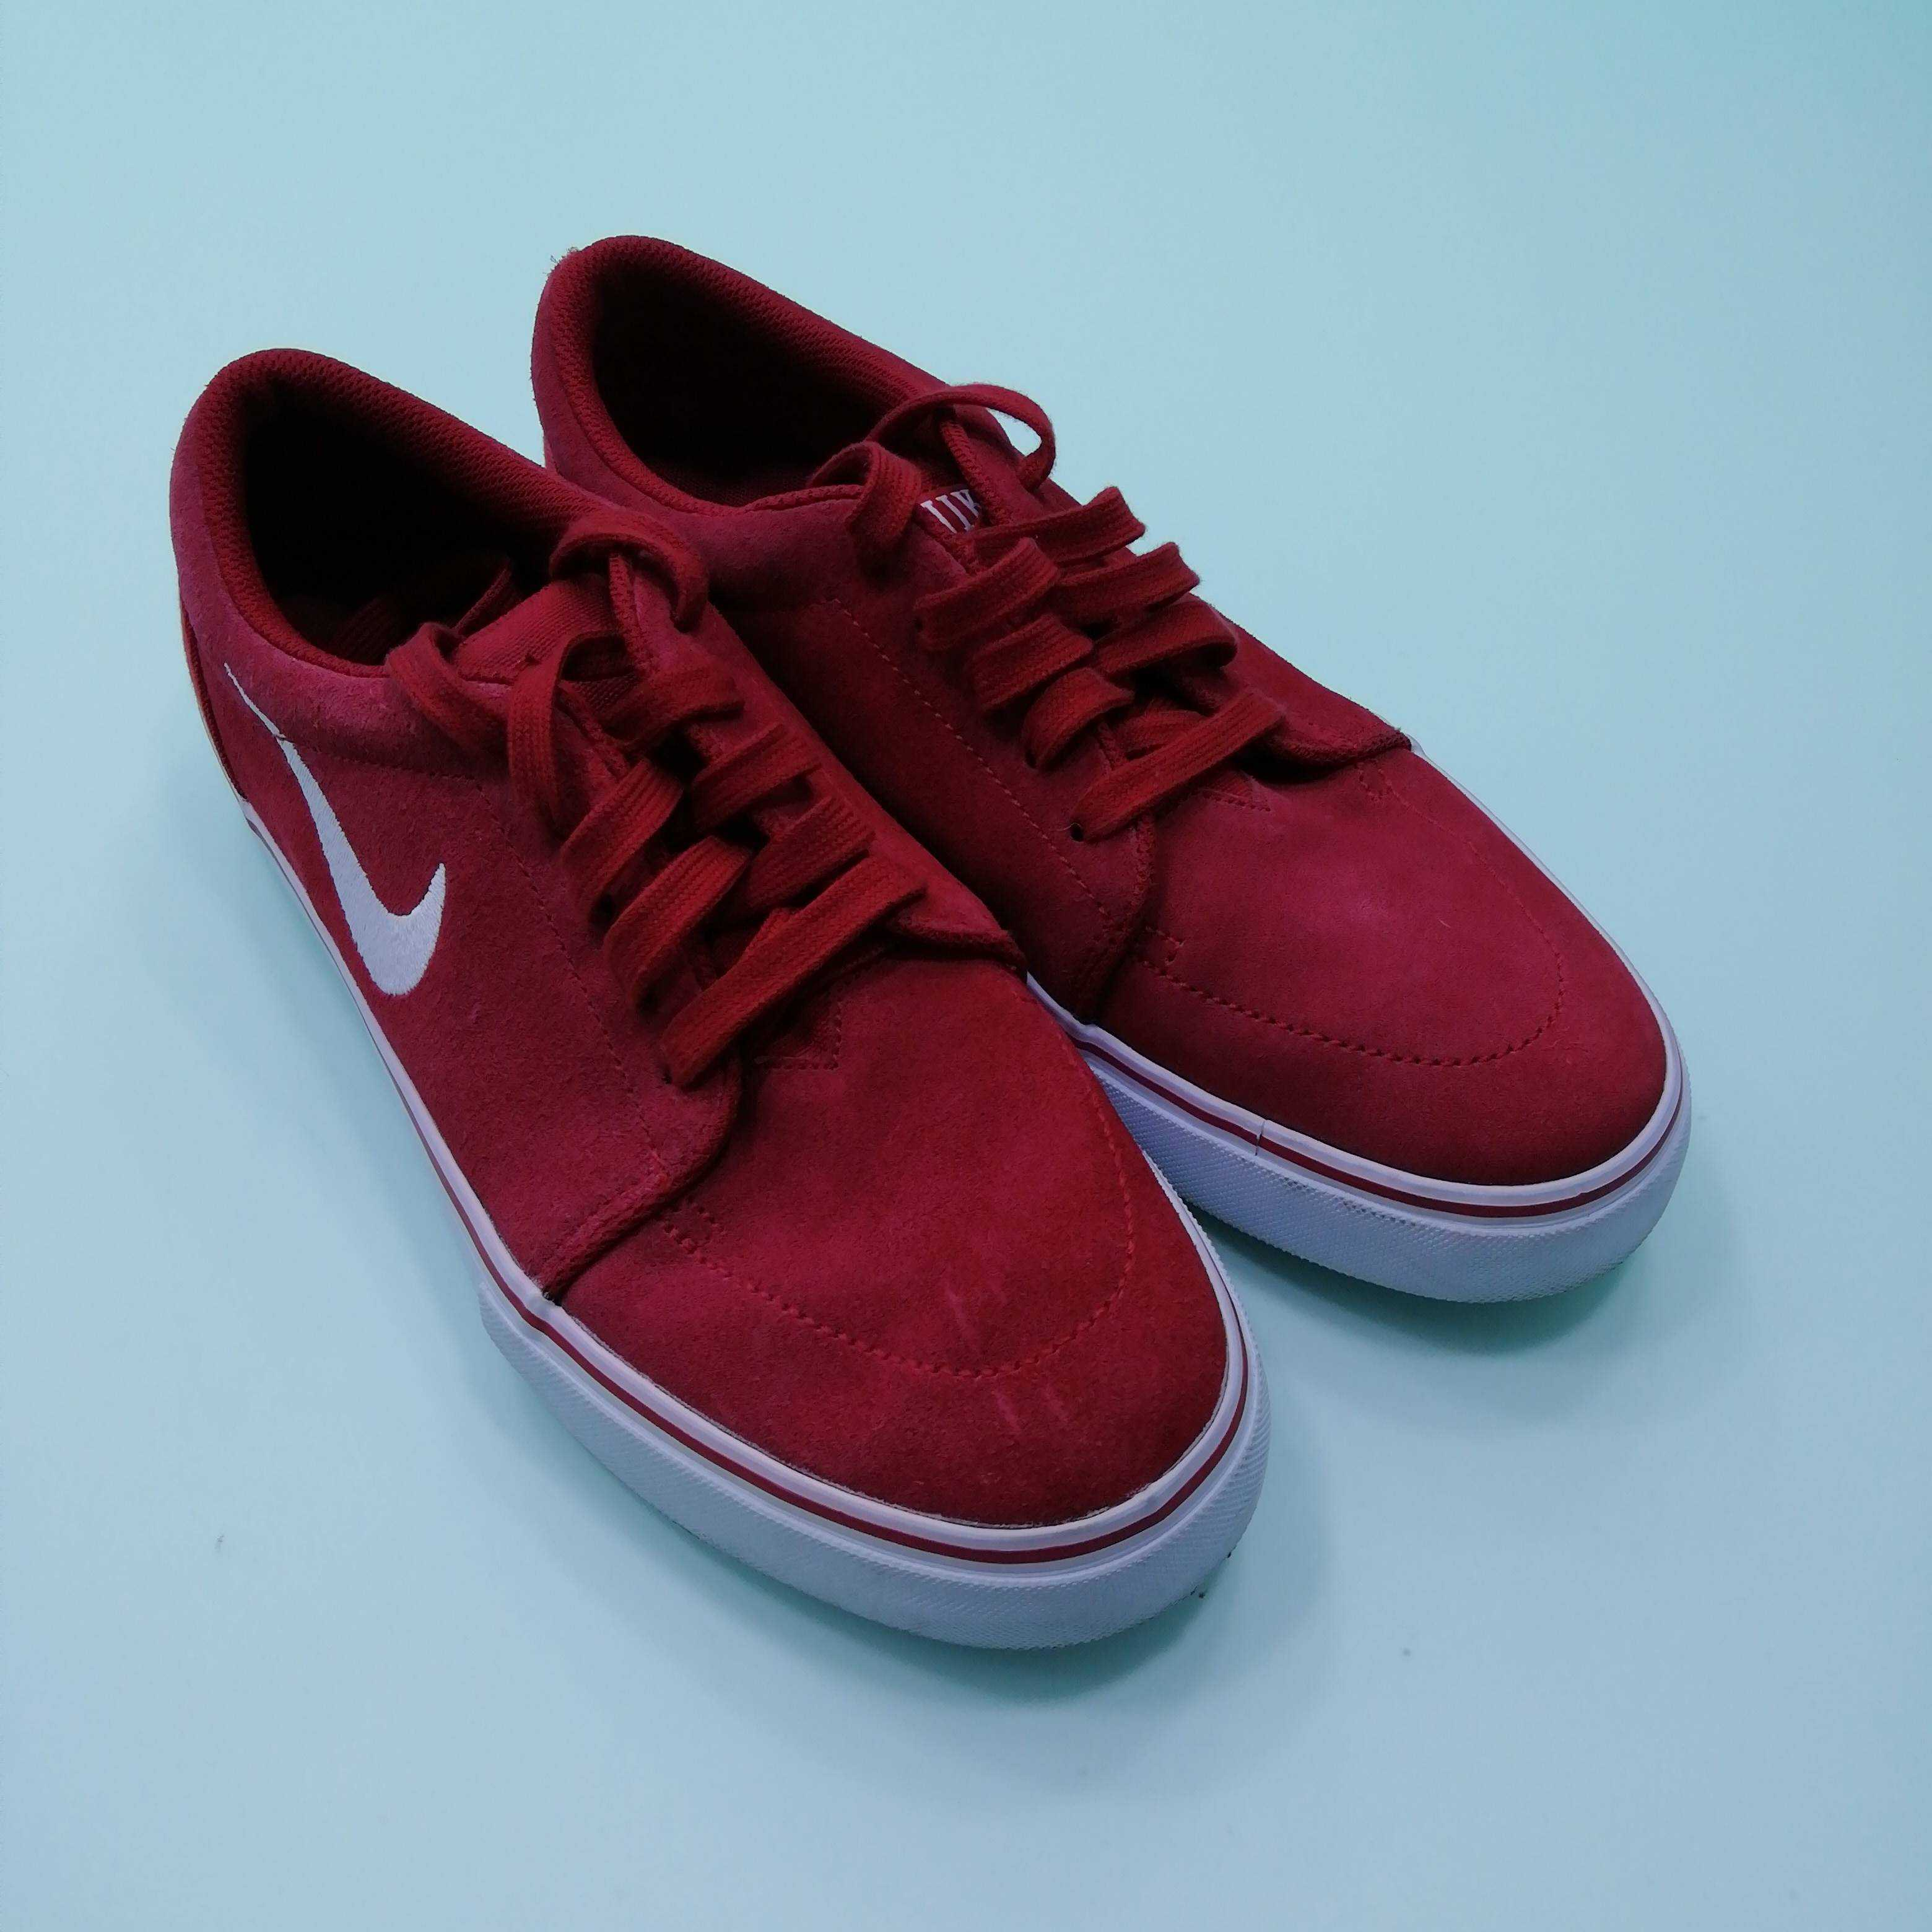 Nike Men's Trainers 7 UK 7 Colour:  Red